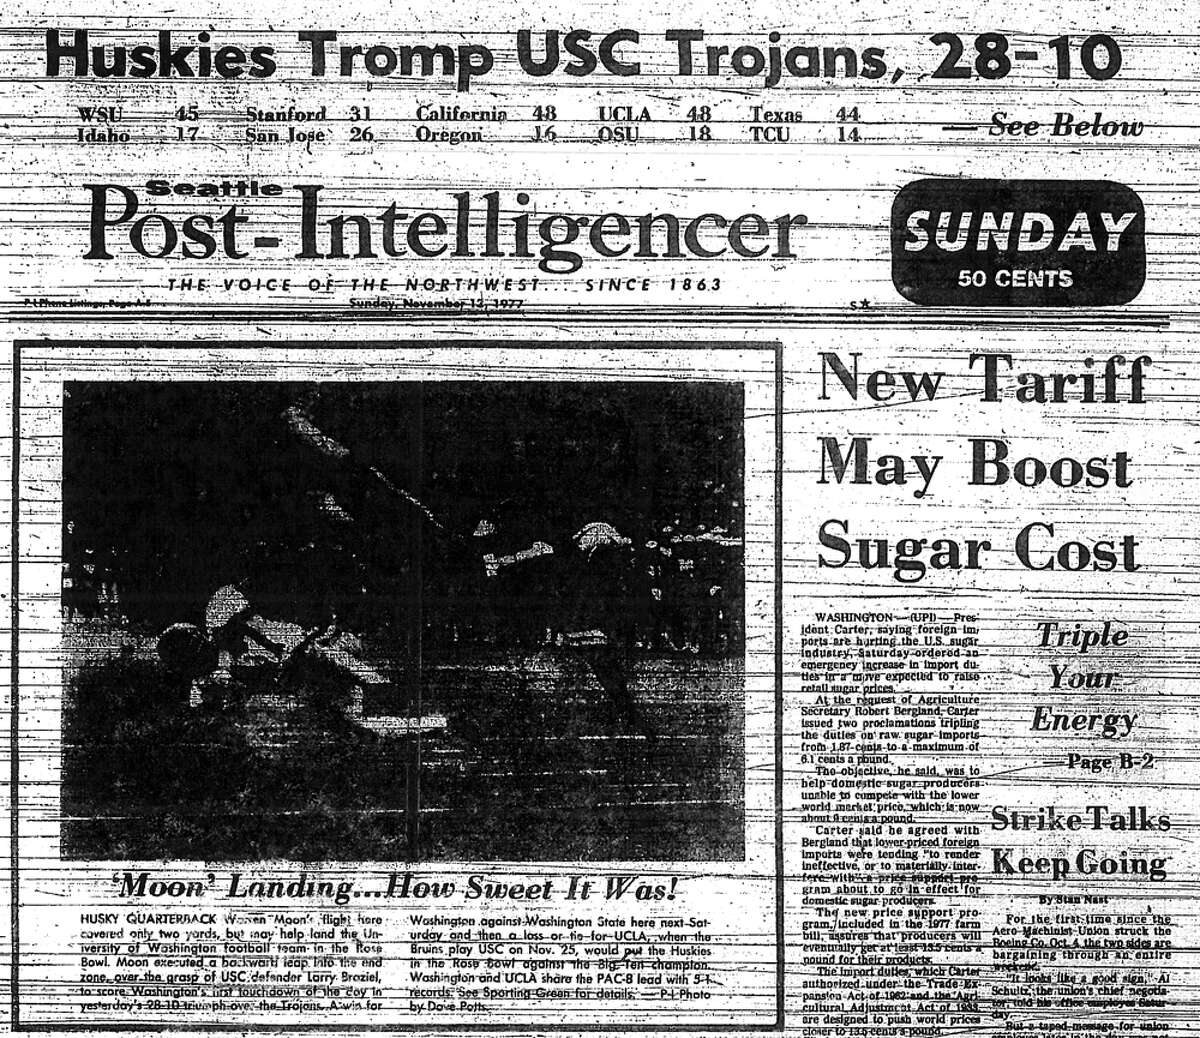 No. 9, Nov. 12, 1977 - Washington 28, USC 10. The first of many memorable Husky wins over USC in the Don James era. After starting the season 1-3, the Huskies finished 6-1 in Pac-8 play to clinch the first Rose Bowl appearance of James' career. This win over USC was perhaps the defining moment of that season, and marked the beginning of UW's perennial competition with the Trojans for the conference crown.